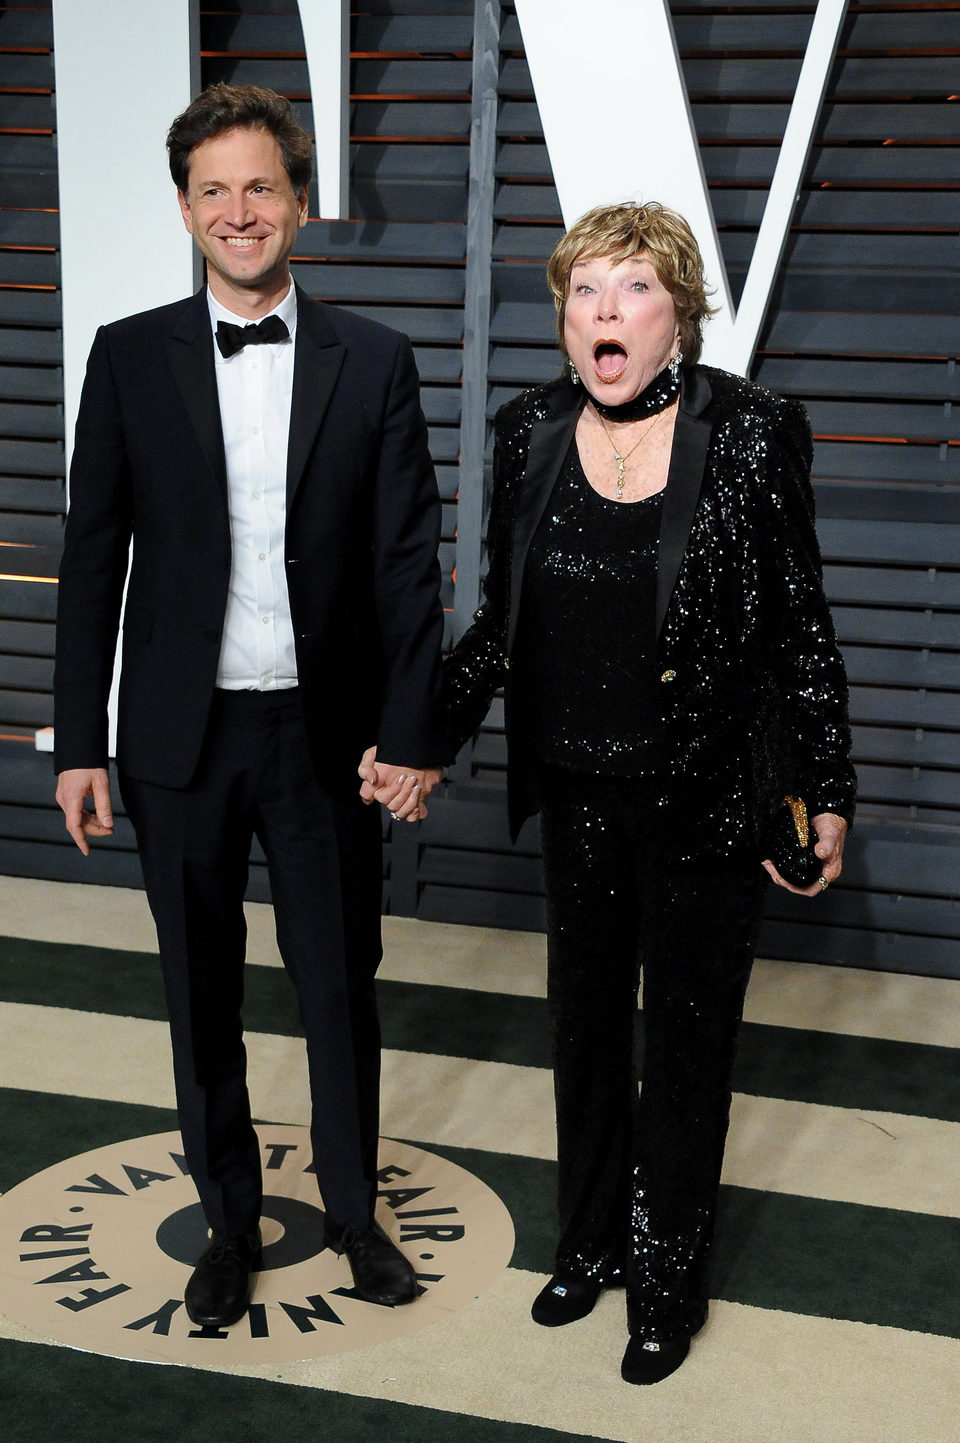 Bennett Miller and Shirley Maclaine poss in the Oscar 2015 red carpet